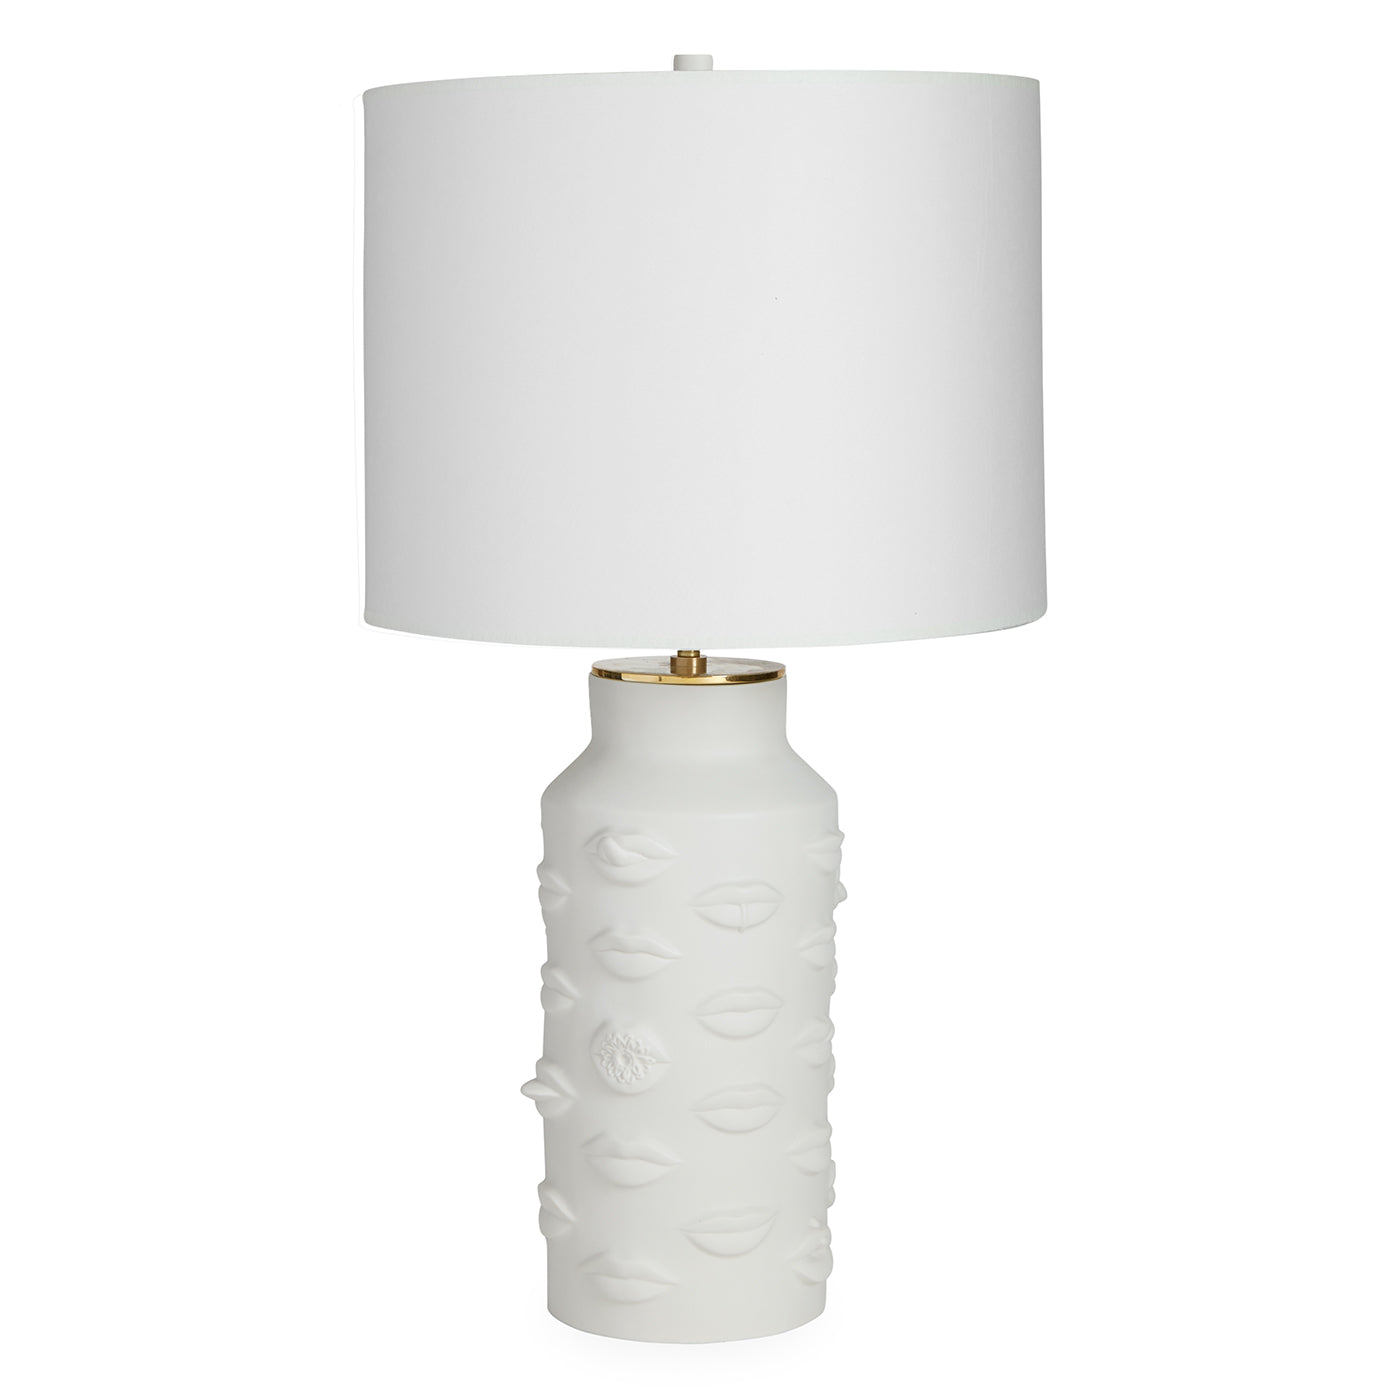 Gala Lips Table Lamp